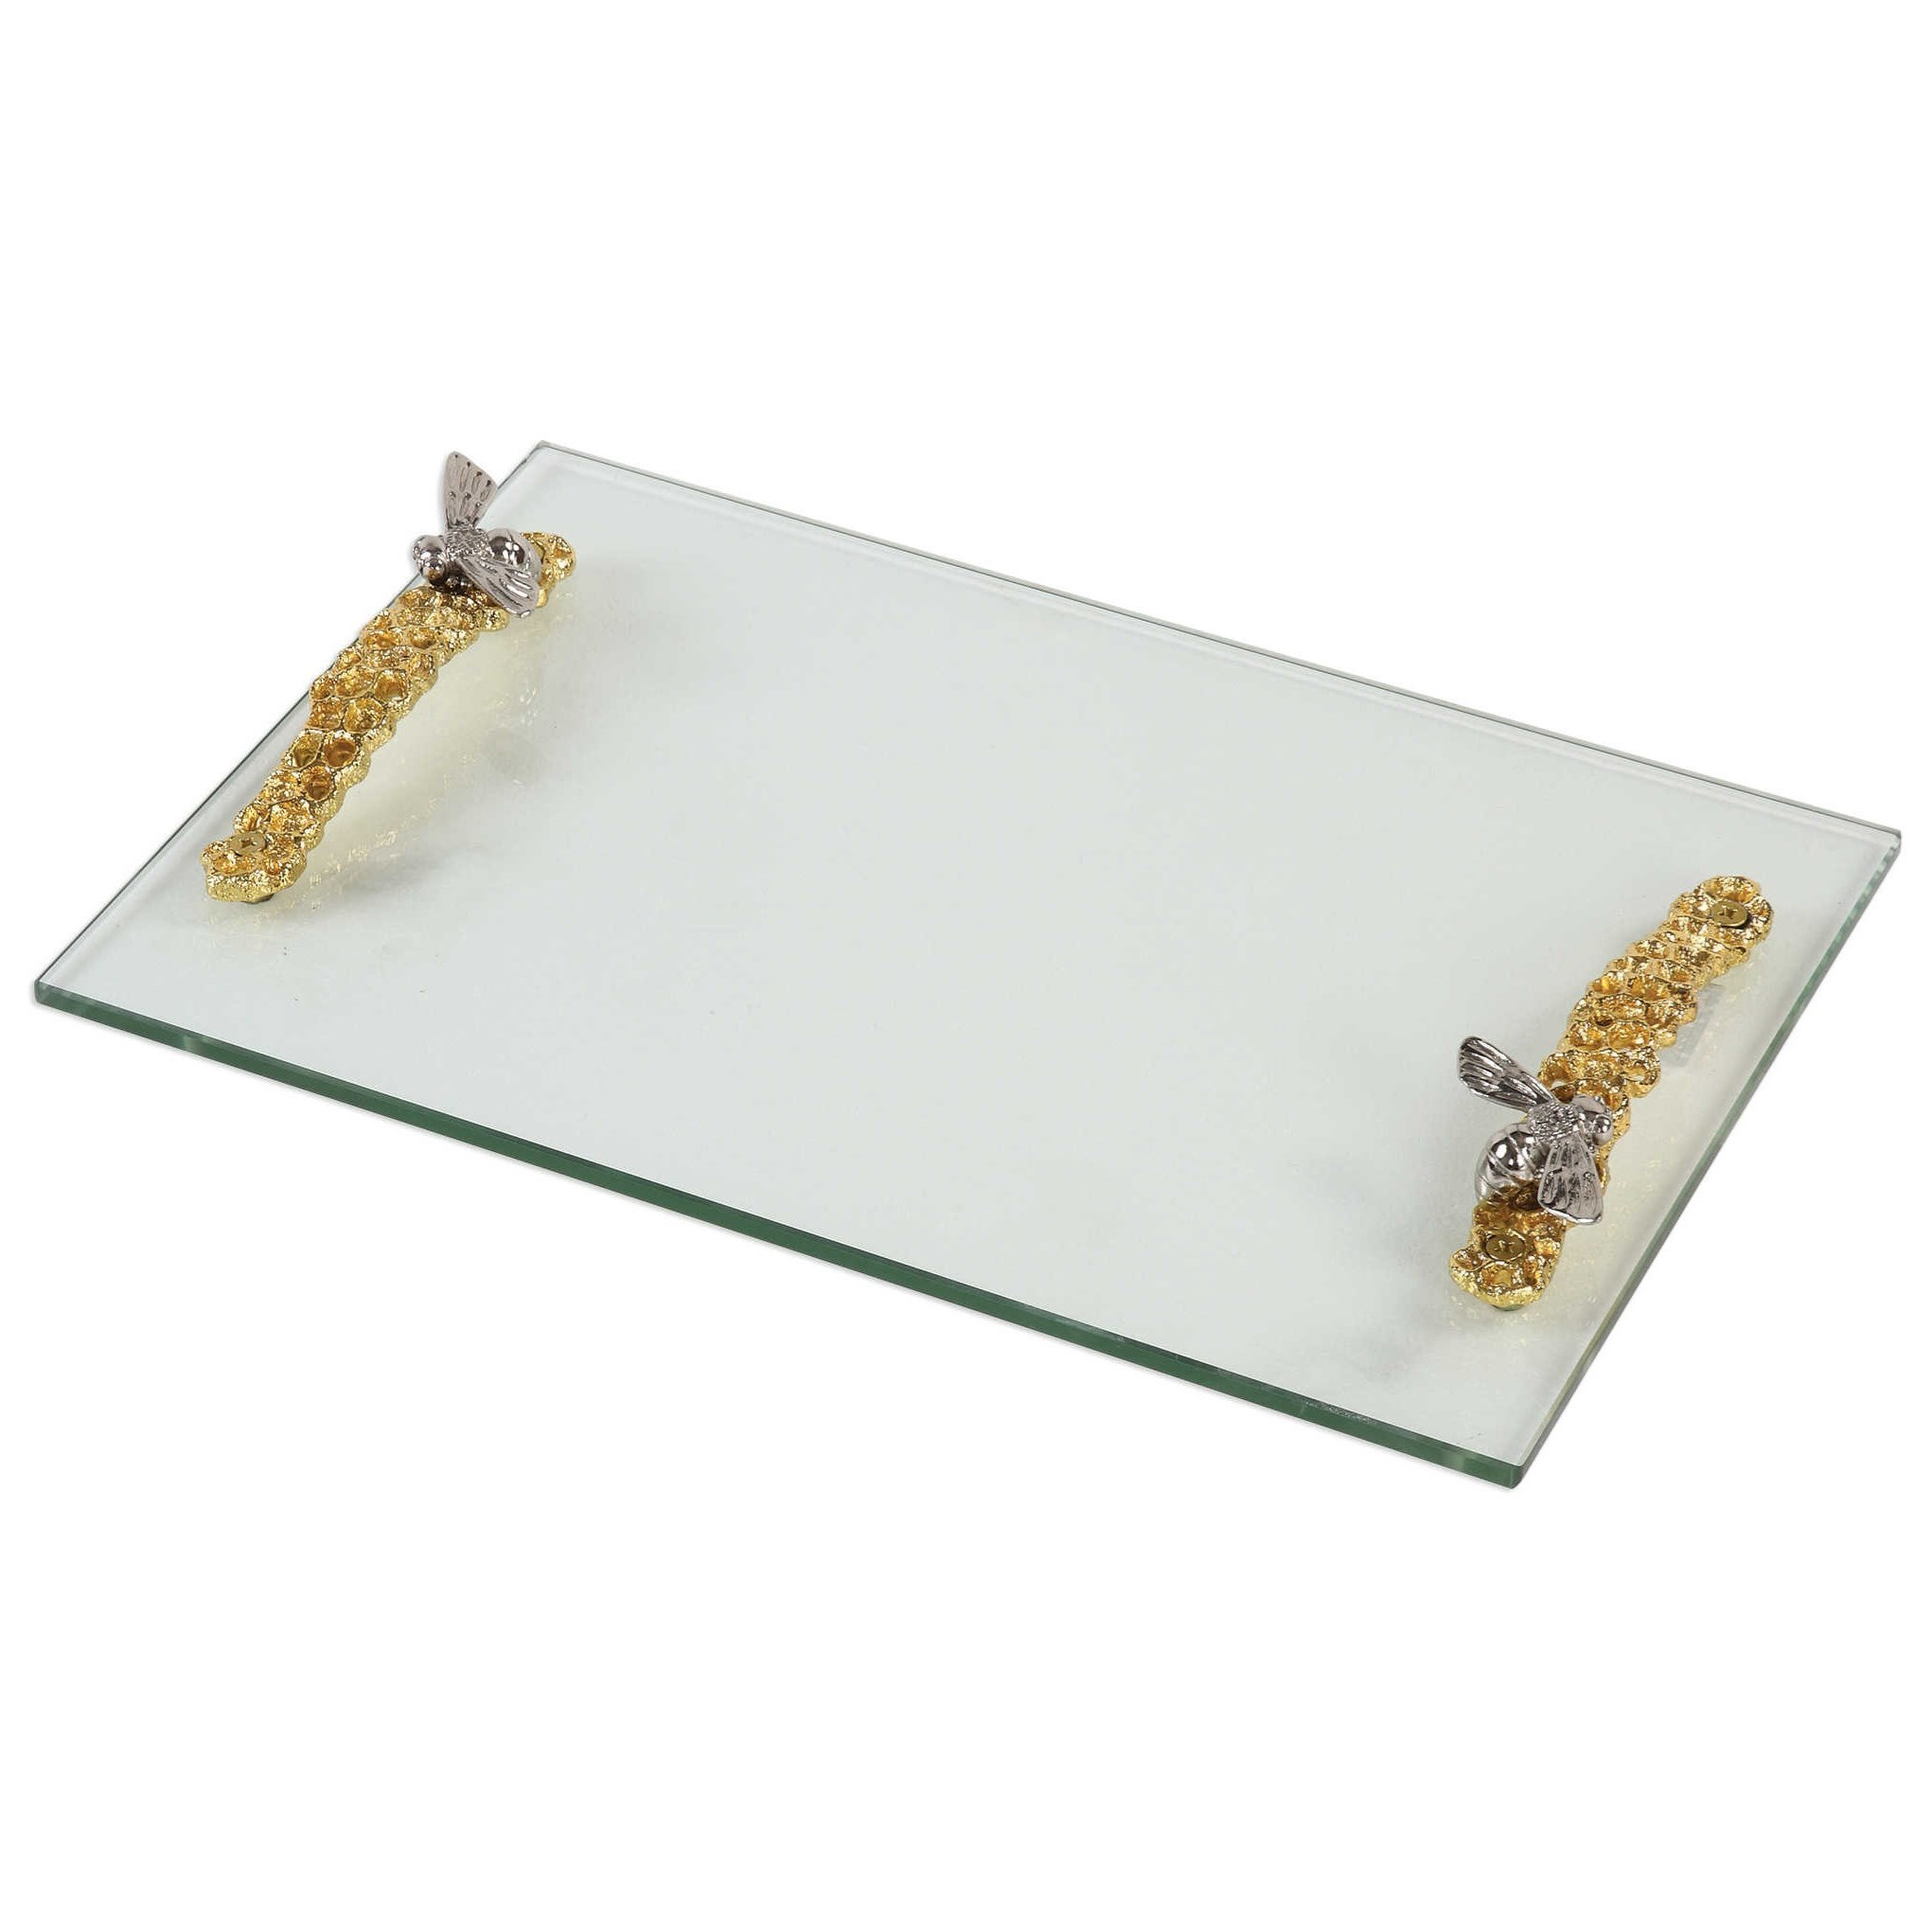 Hive Glass Tray